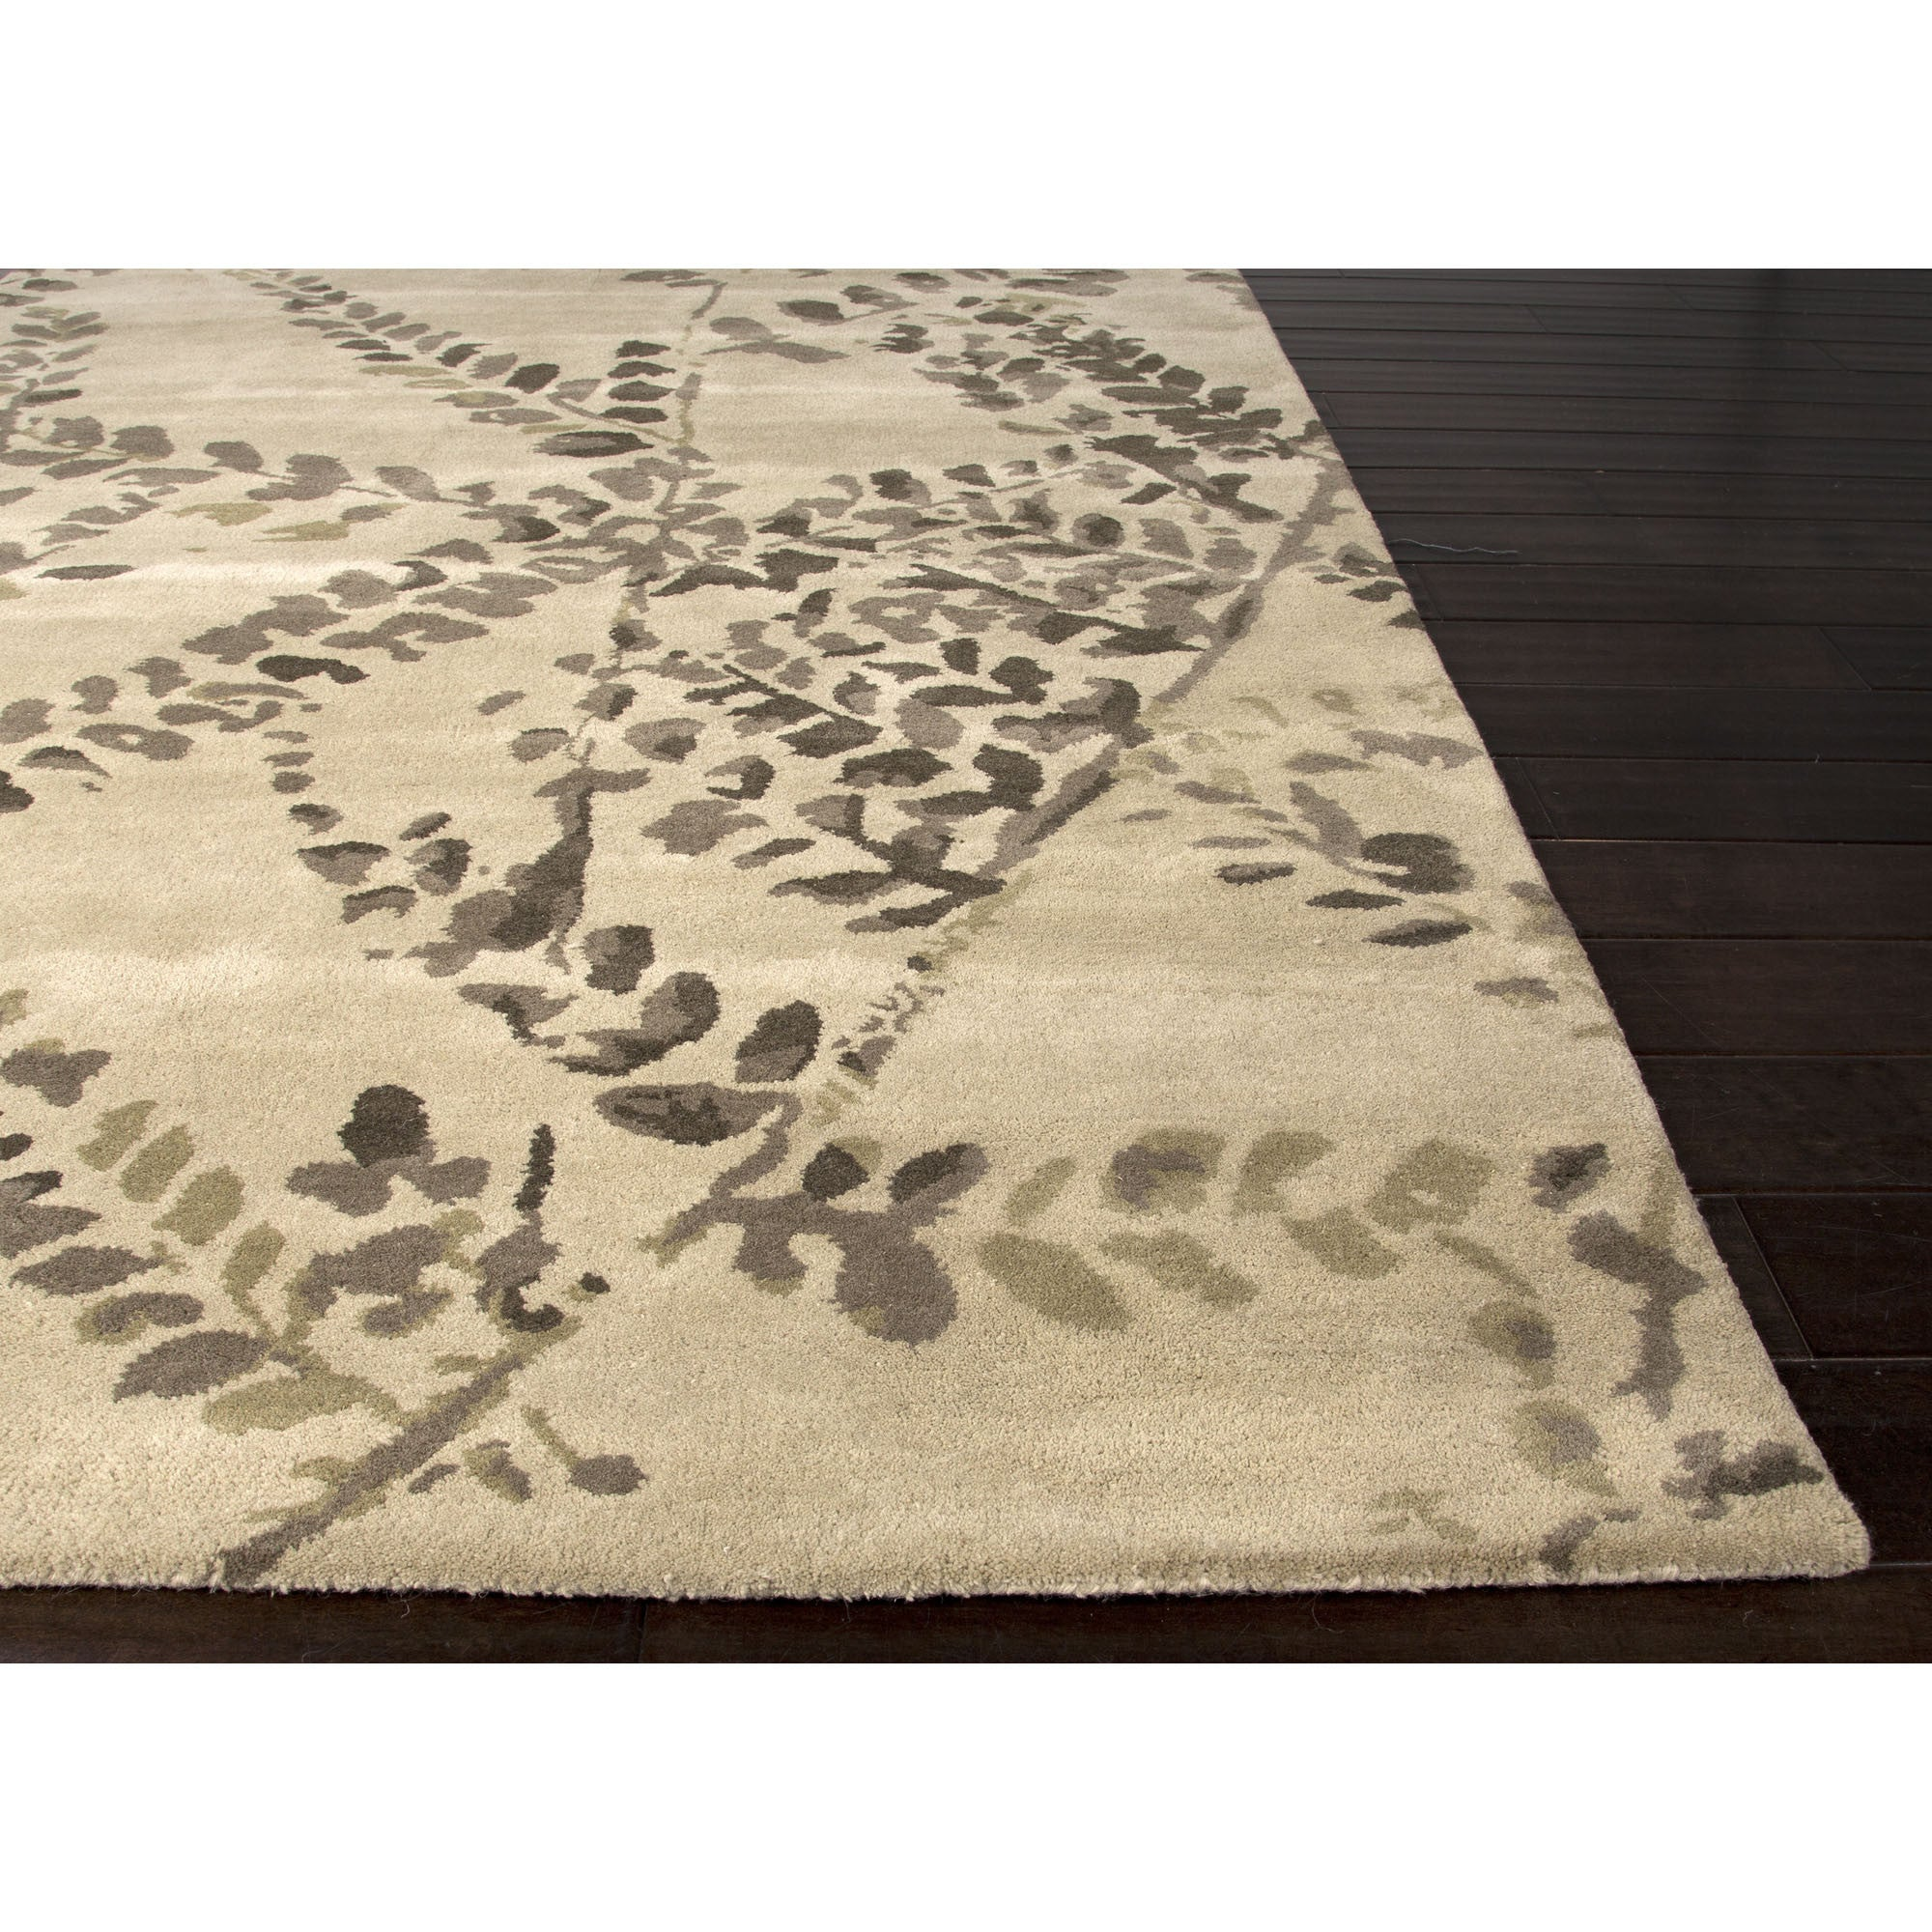 Jaipur rugs modern floral pattern taupe ivory wool area for Modern wool area rugs